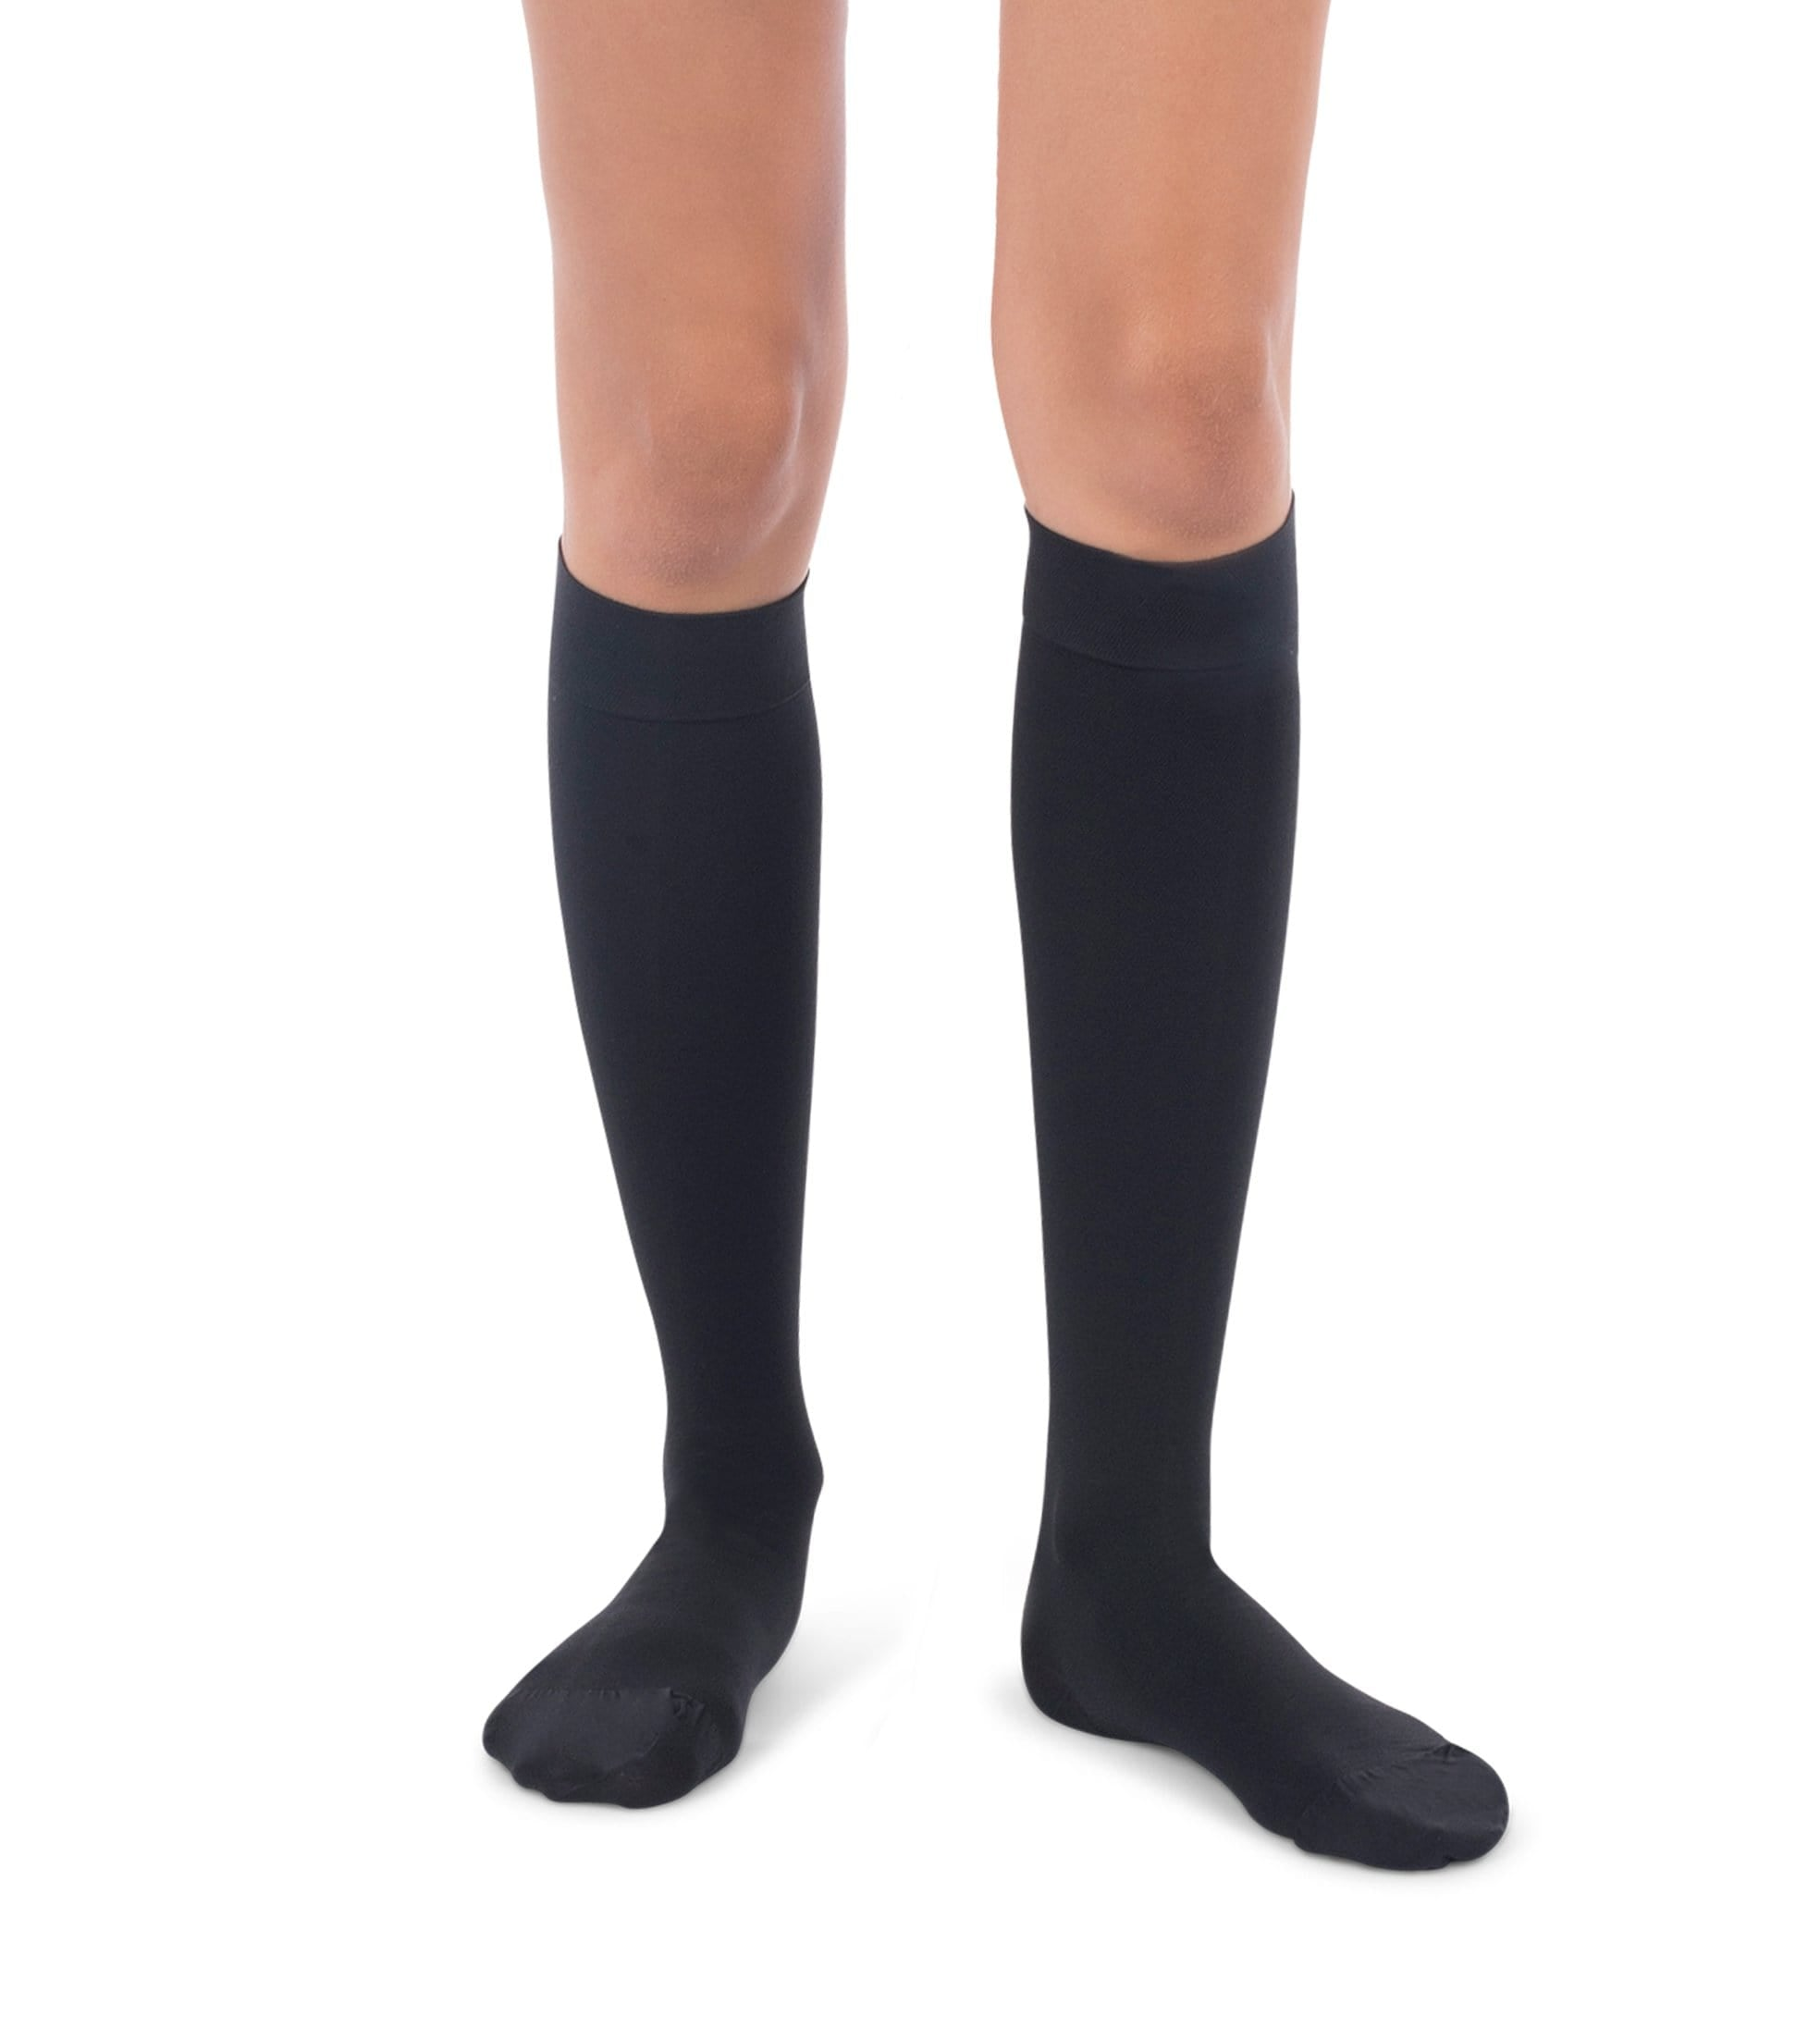 JOMI Knee High Compression Stockings, 20-30mmHg Surgical Weight Closed Toe 220 - Black / Large